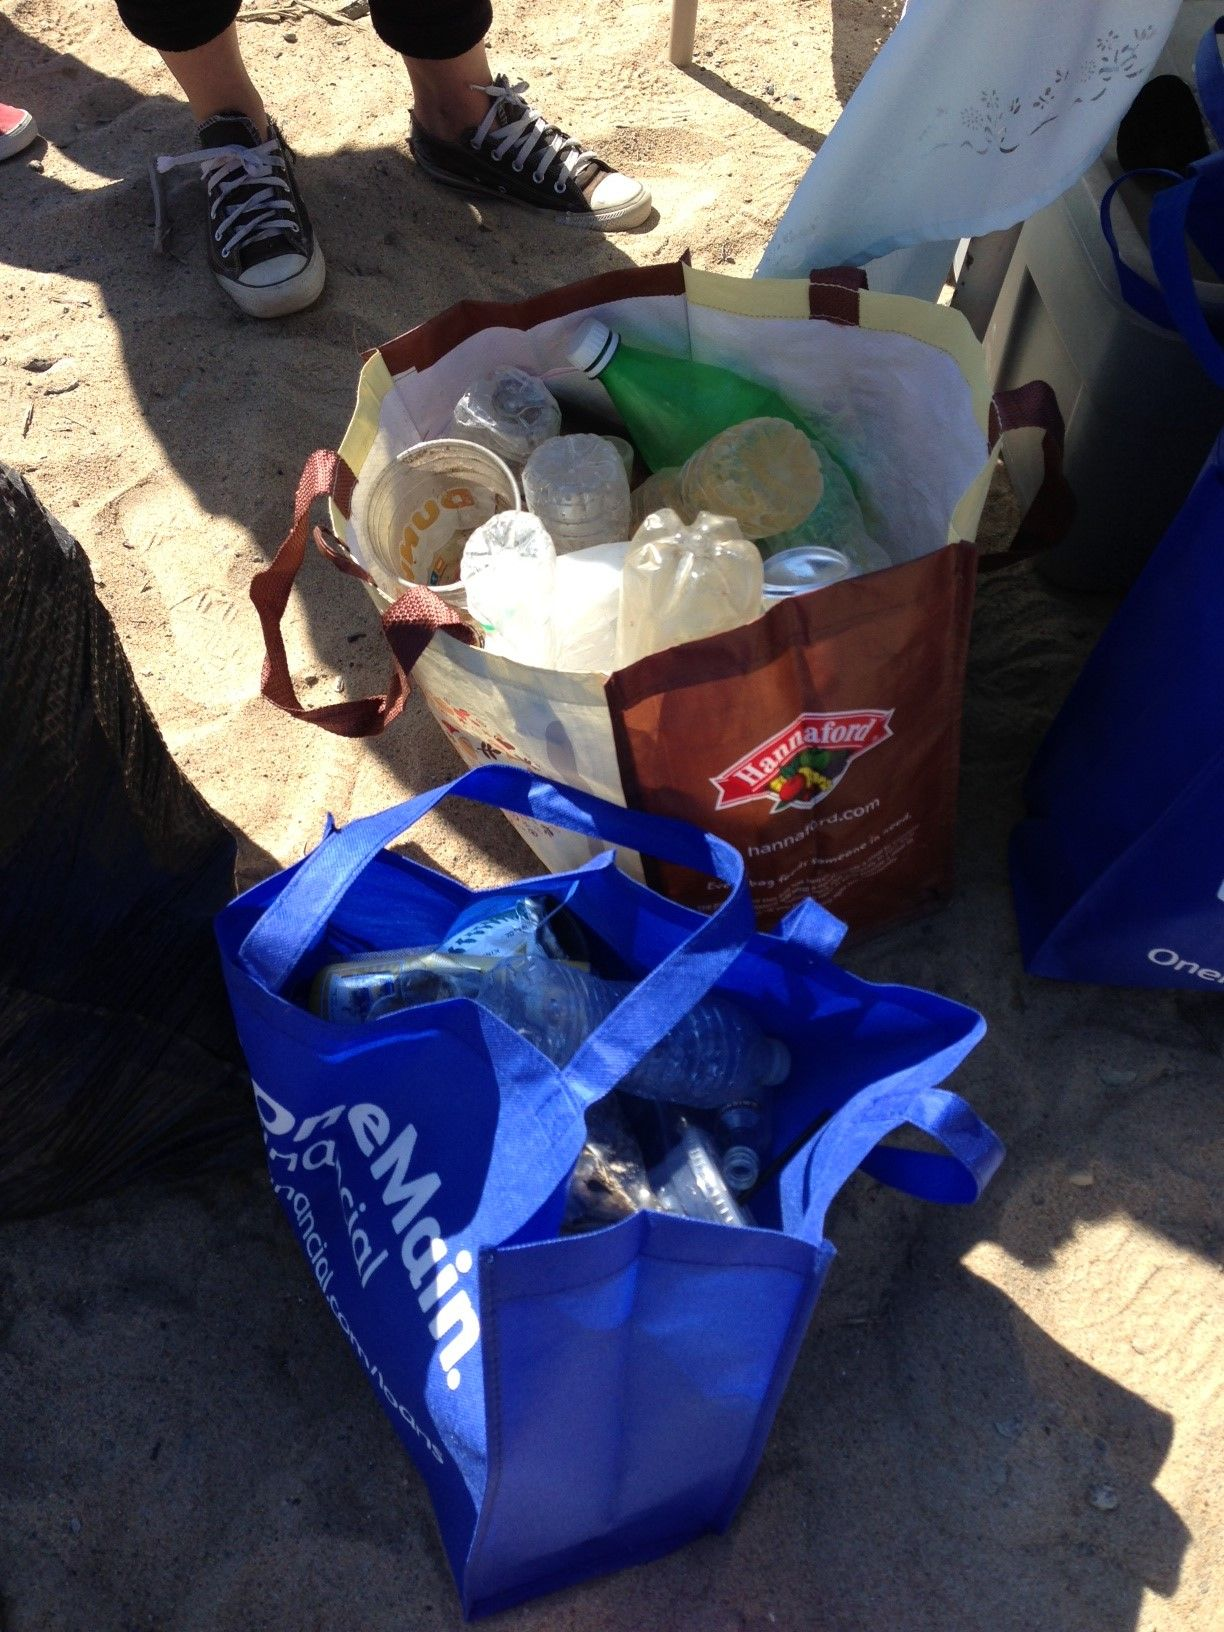 Nearly 60 lbs of trash was collected from the beach over the course of just a few hours!